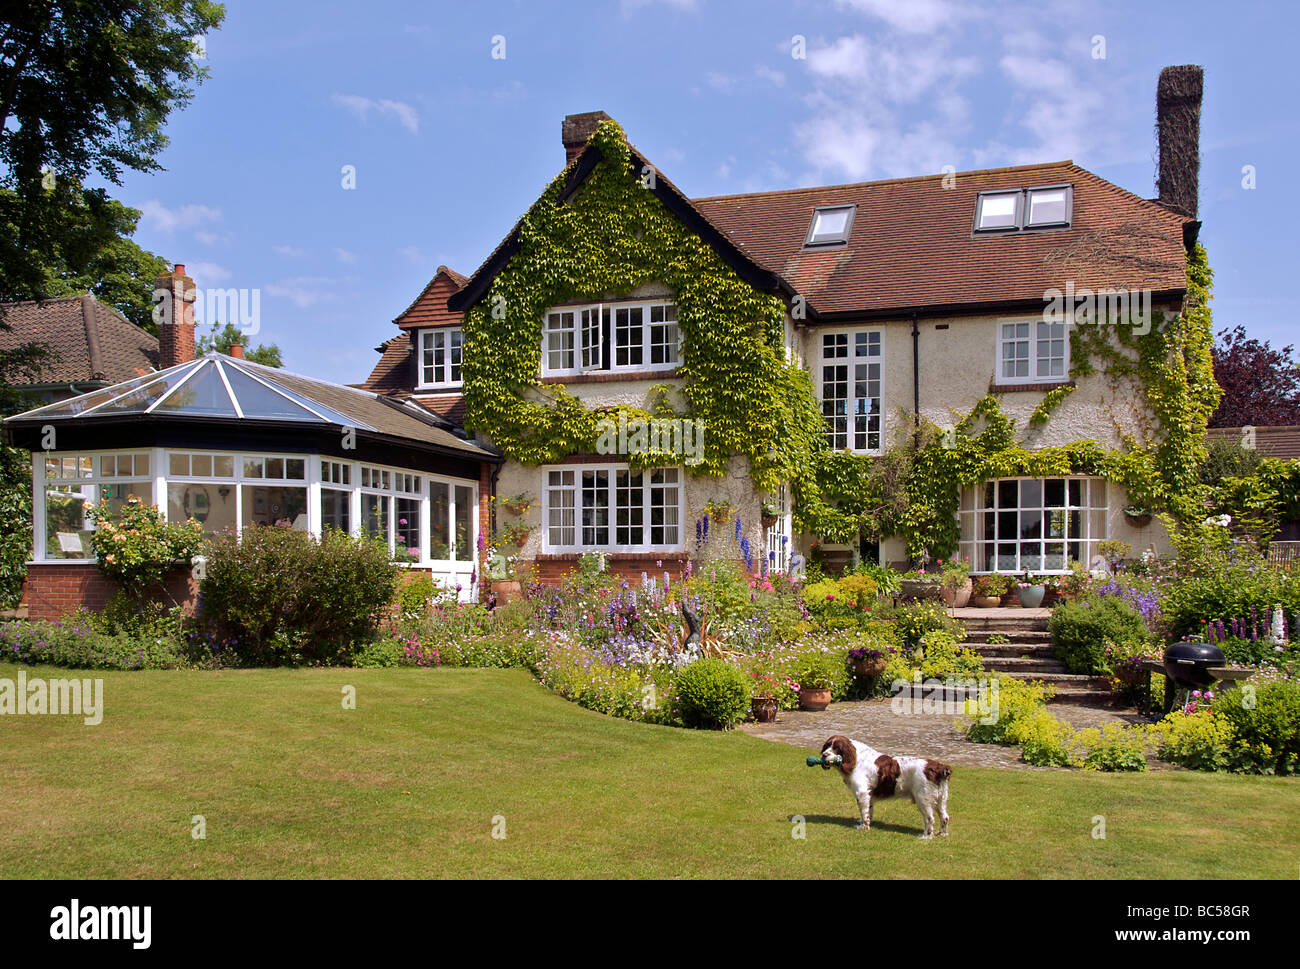 16 beautiful house with garden images decor23 for Beautiful home gardens